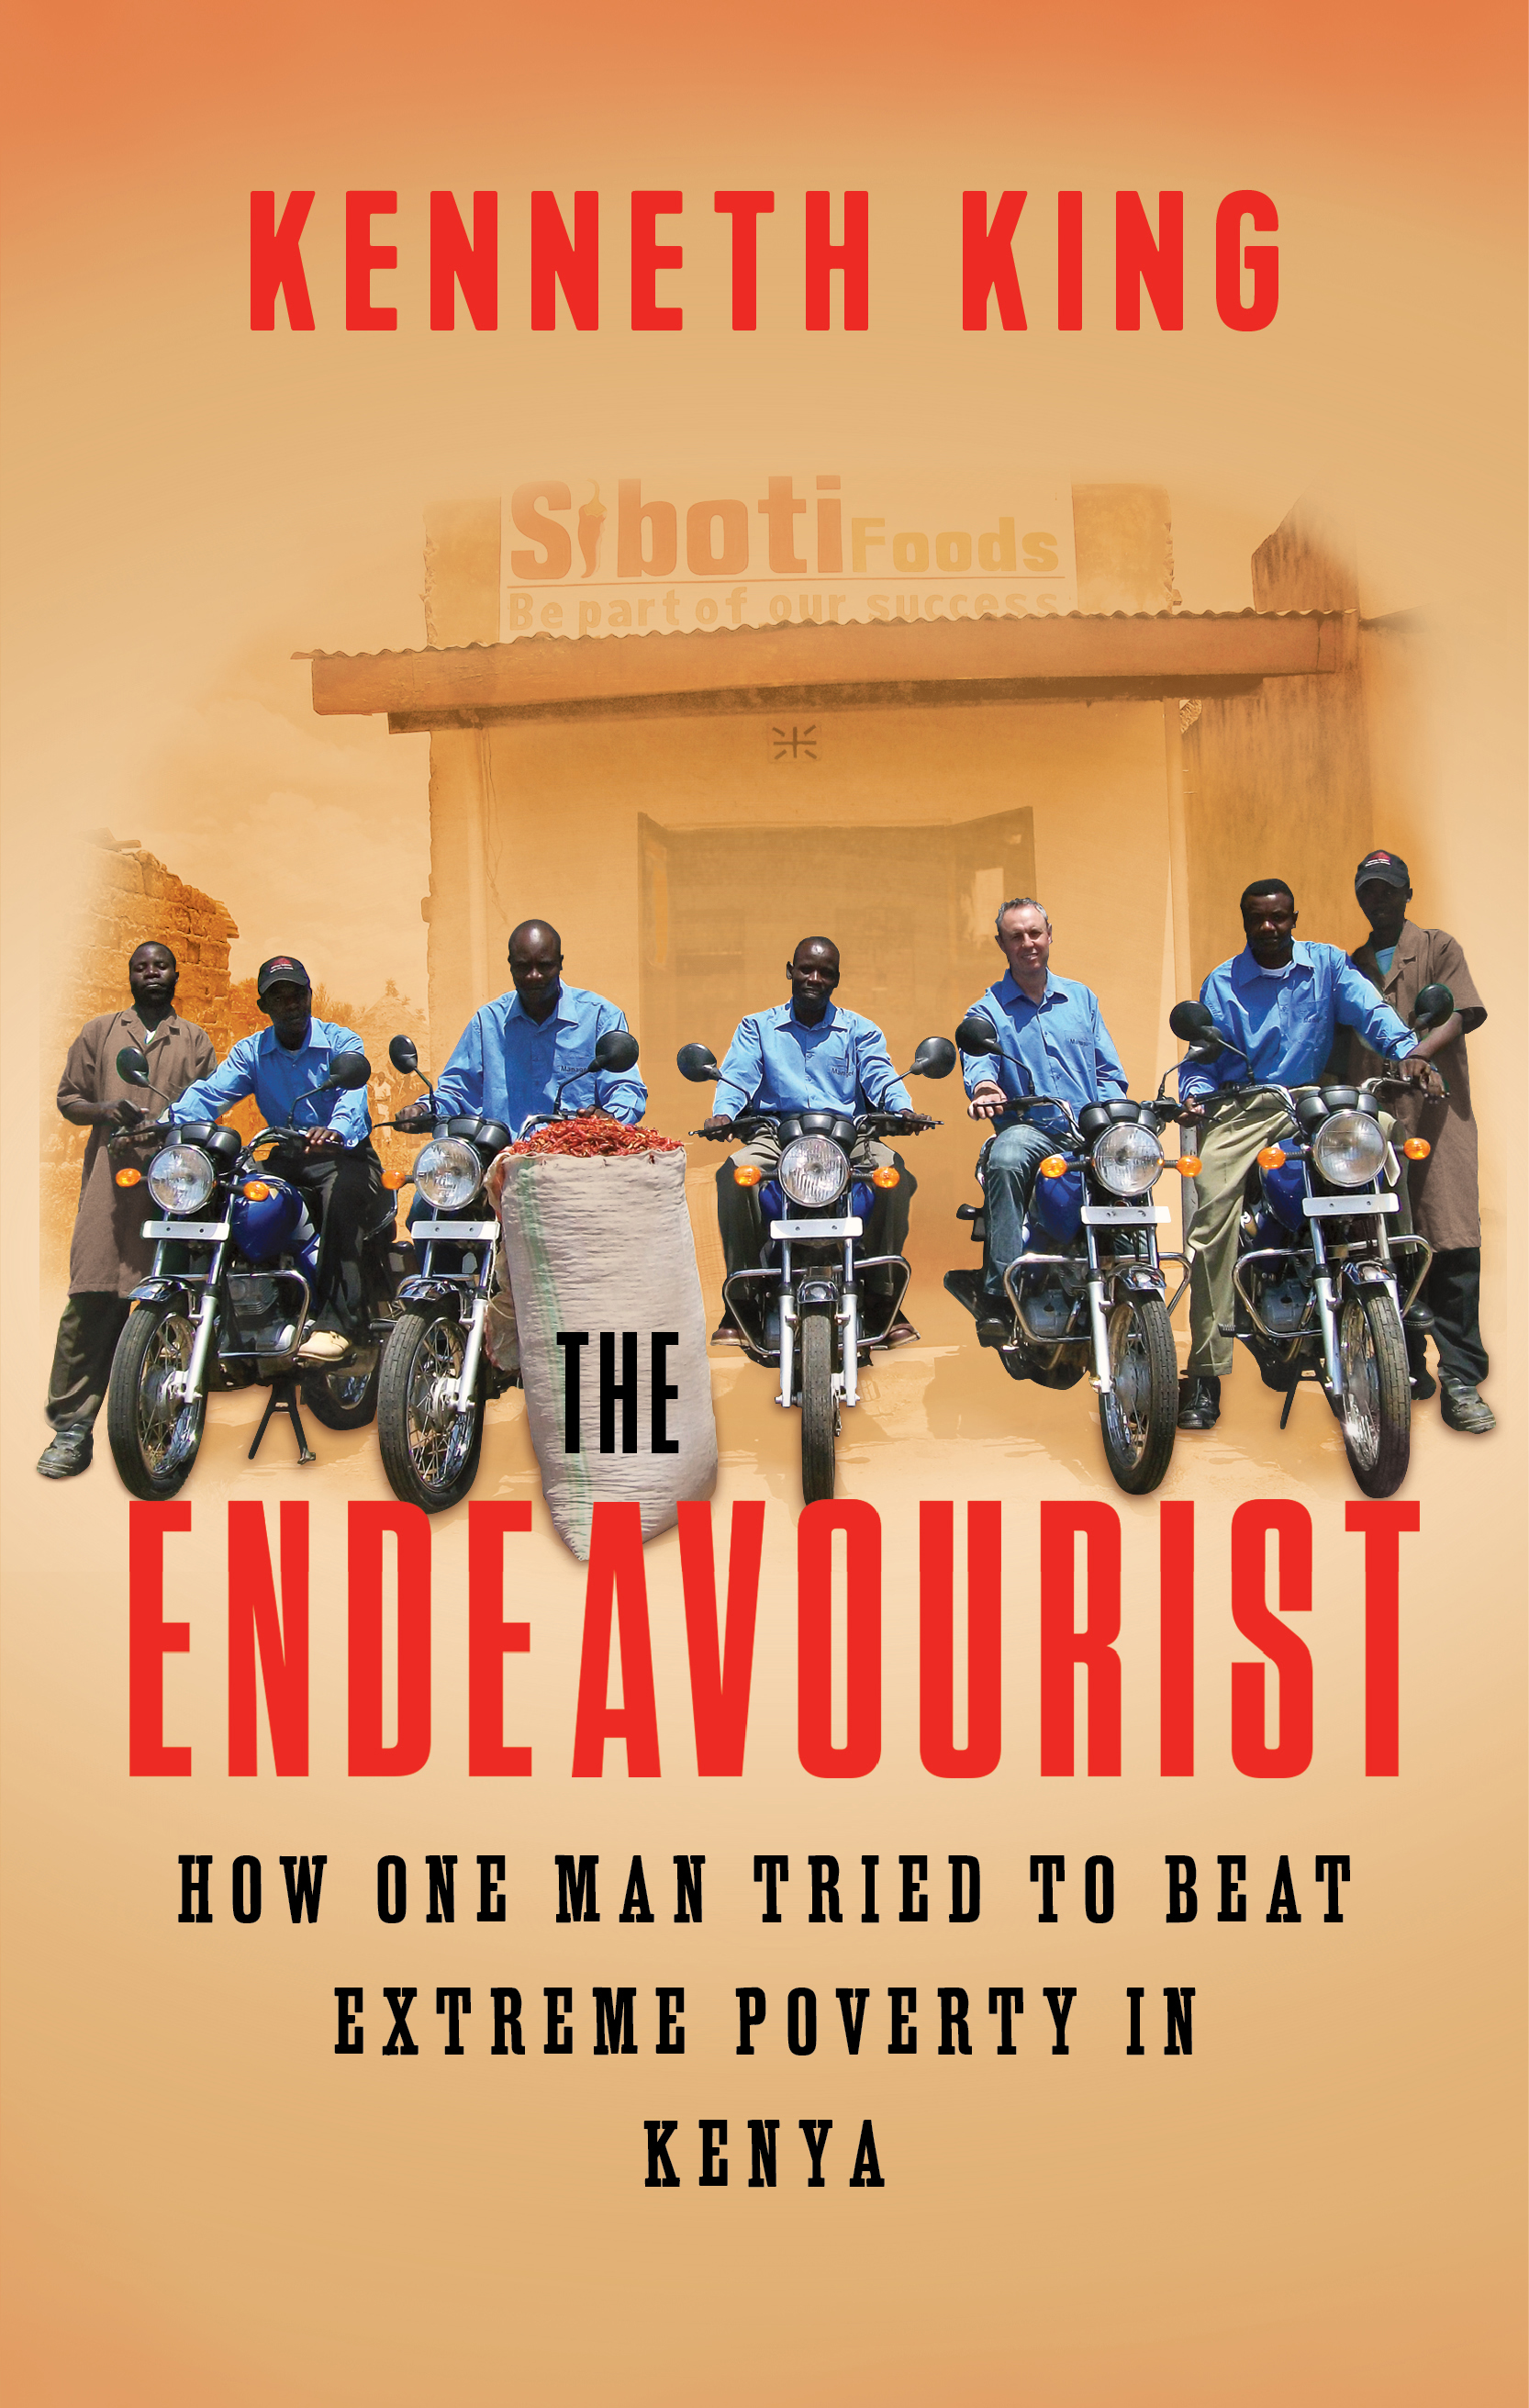 Launch of the Endeavourist